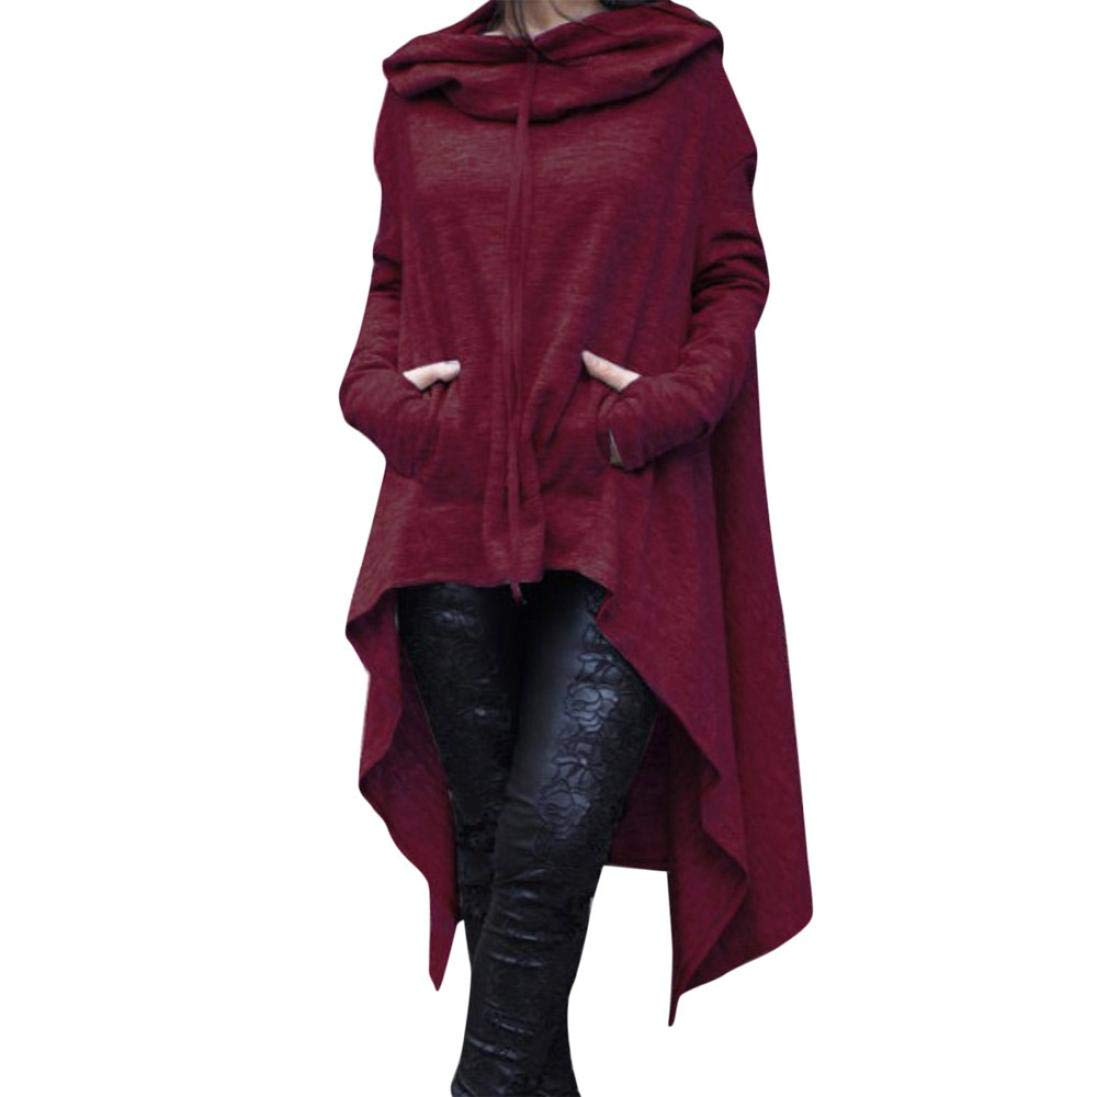 Rambling New Women's Pullover Irregular Hem Long Drawstring Loose Hoodie Top Dress